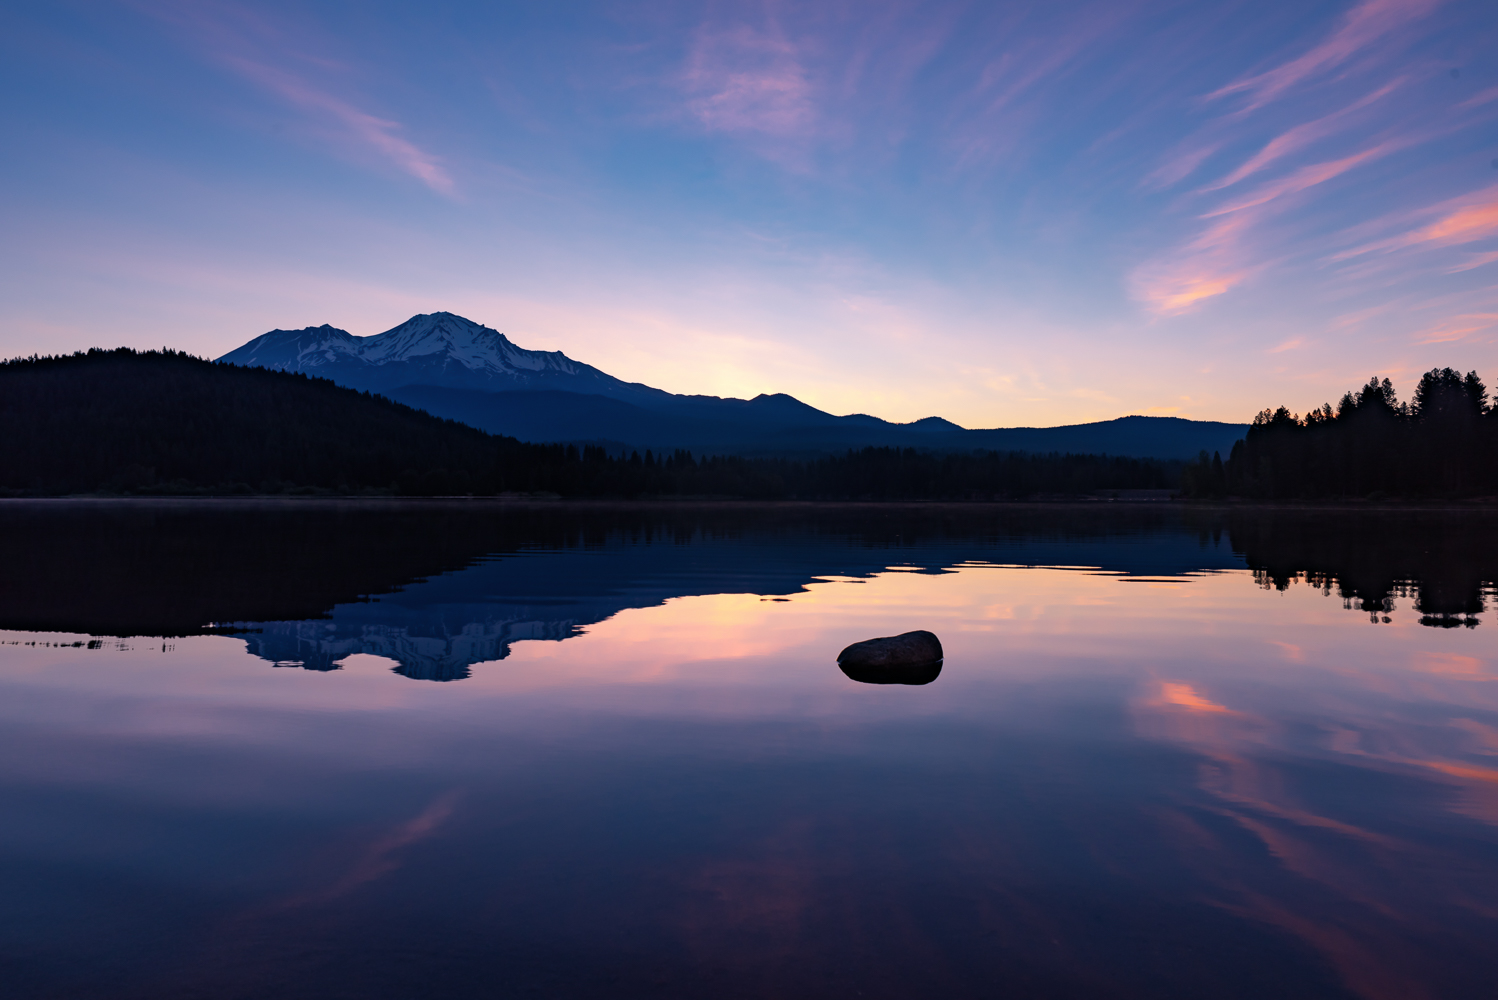 A perfect morning at Lake Siskiyou enabled me to shoot my version of an iconic scene.